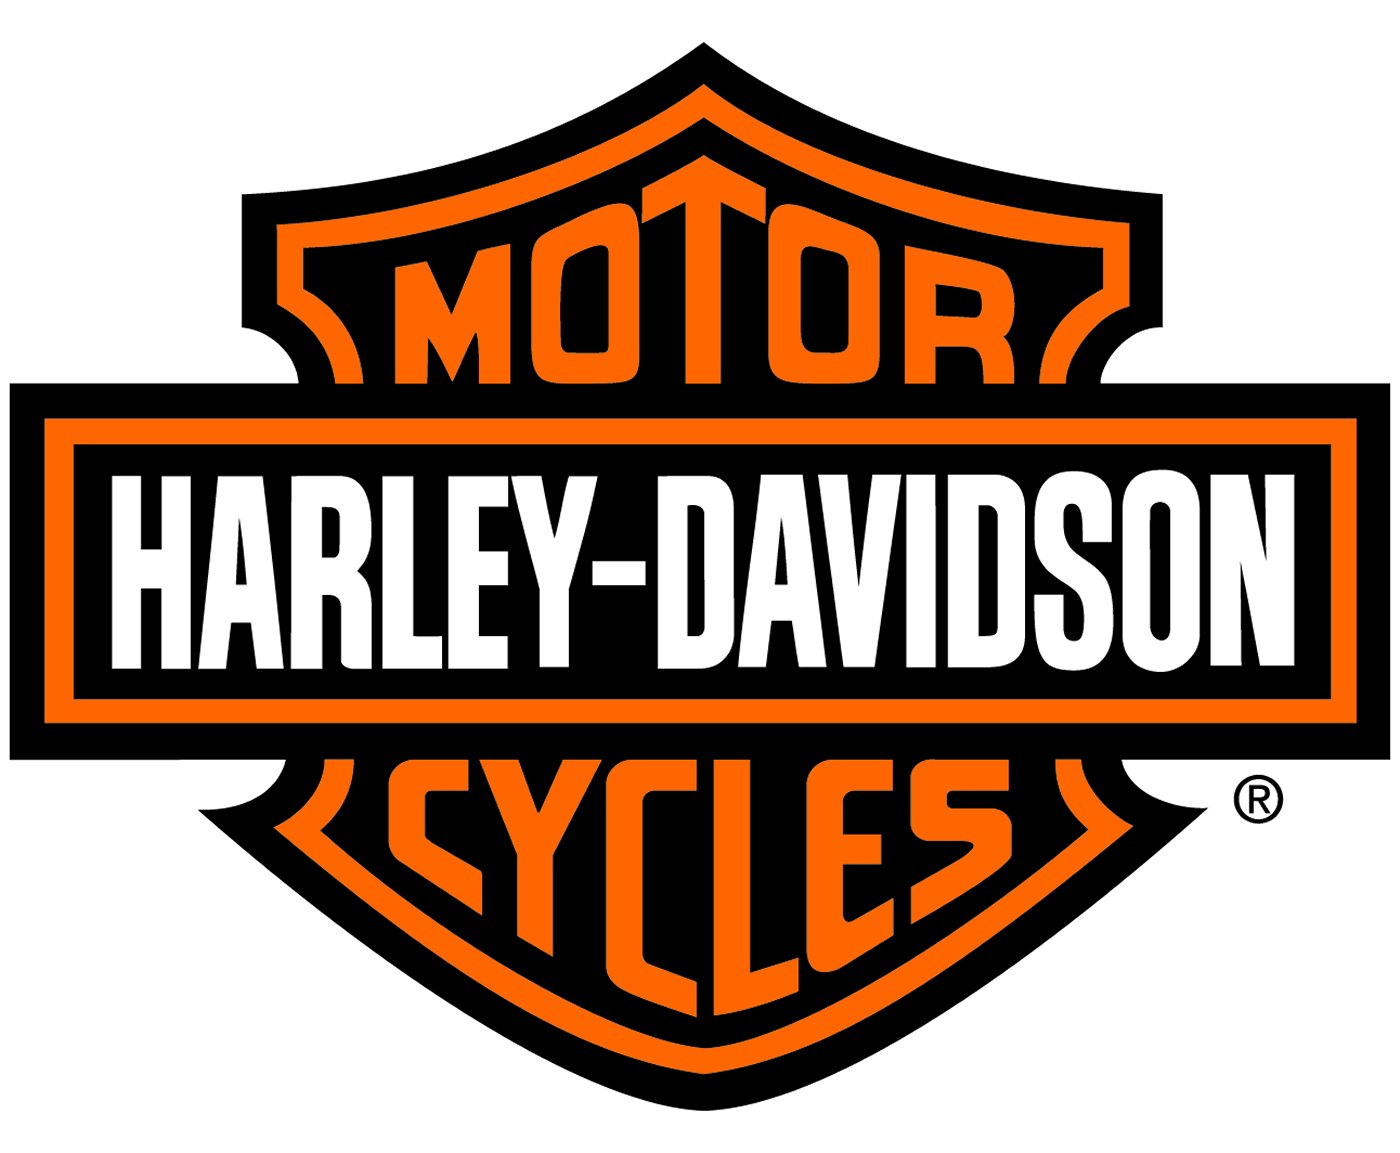 Description Harley Davidson Logojpg